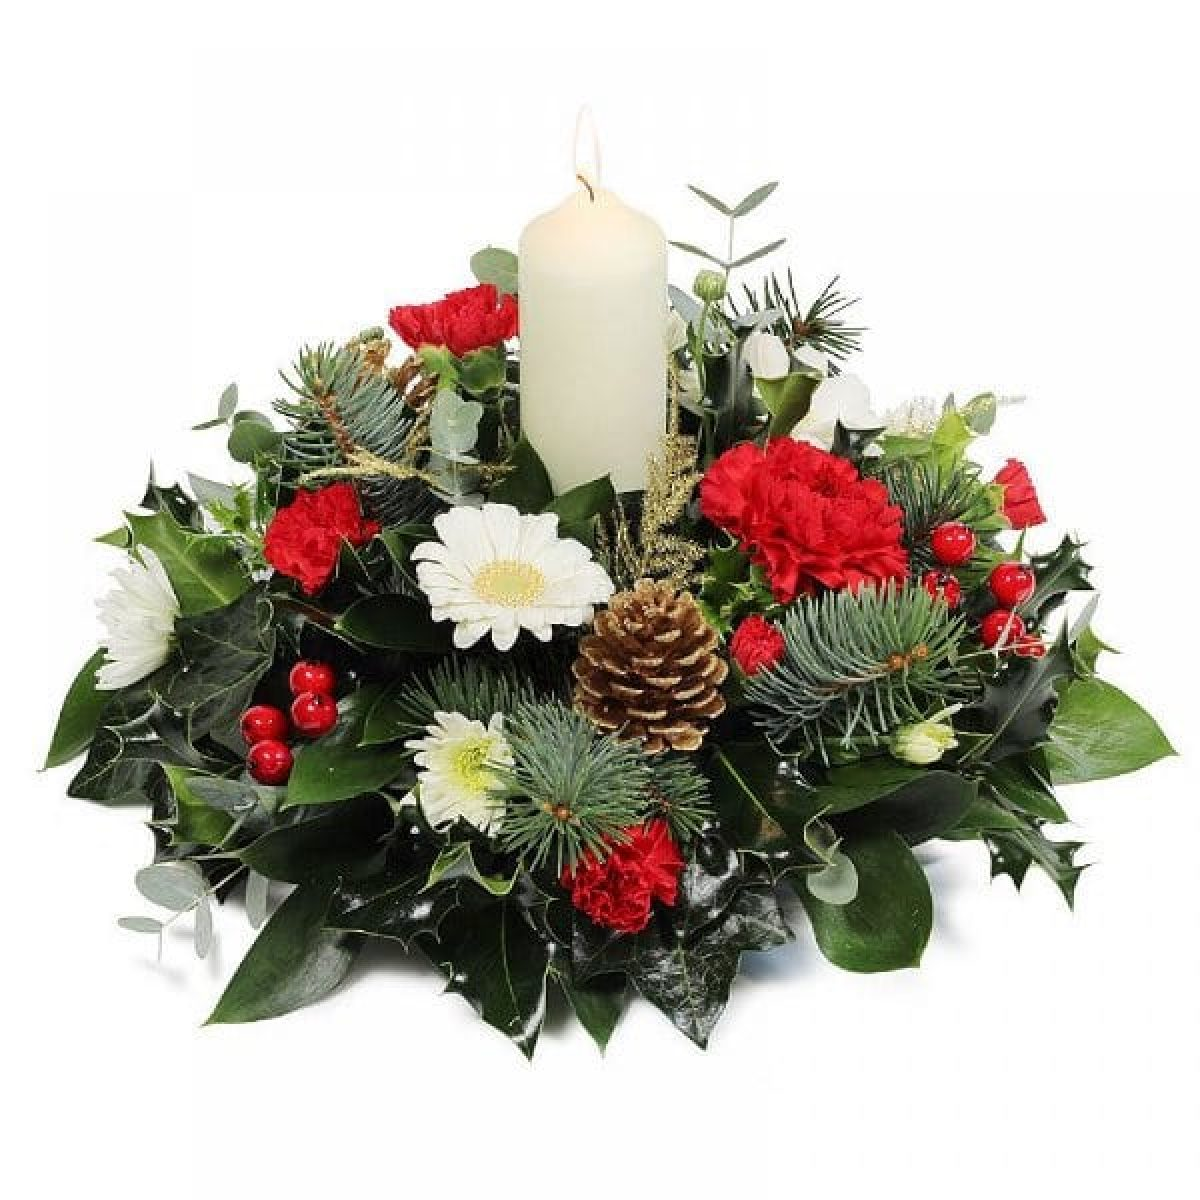 Christmas flowers-Christmas Wishes Centerpiece